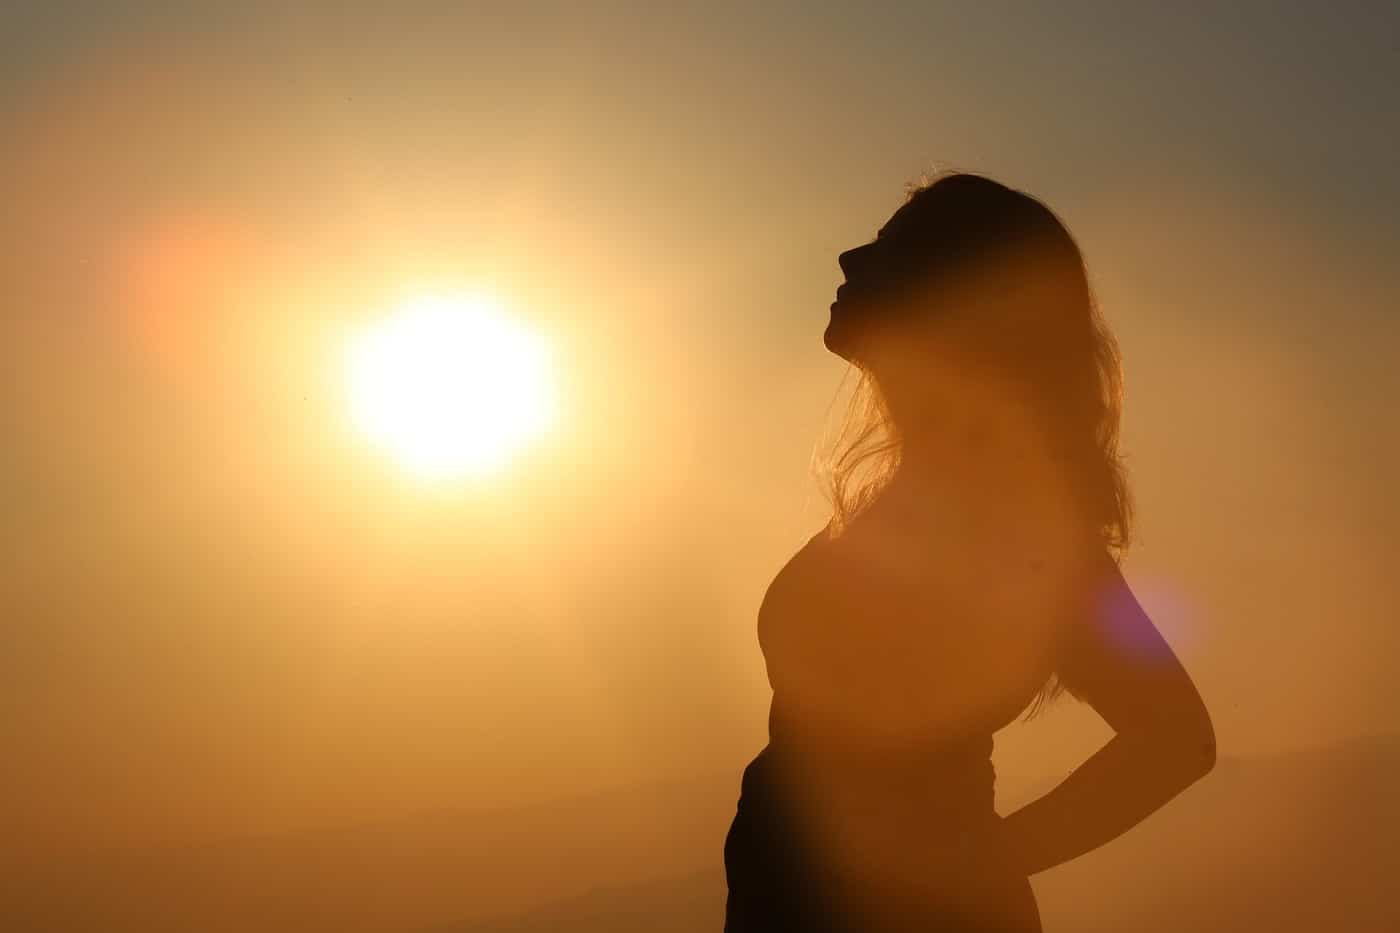 Woman's silhouette looking up at sun